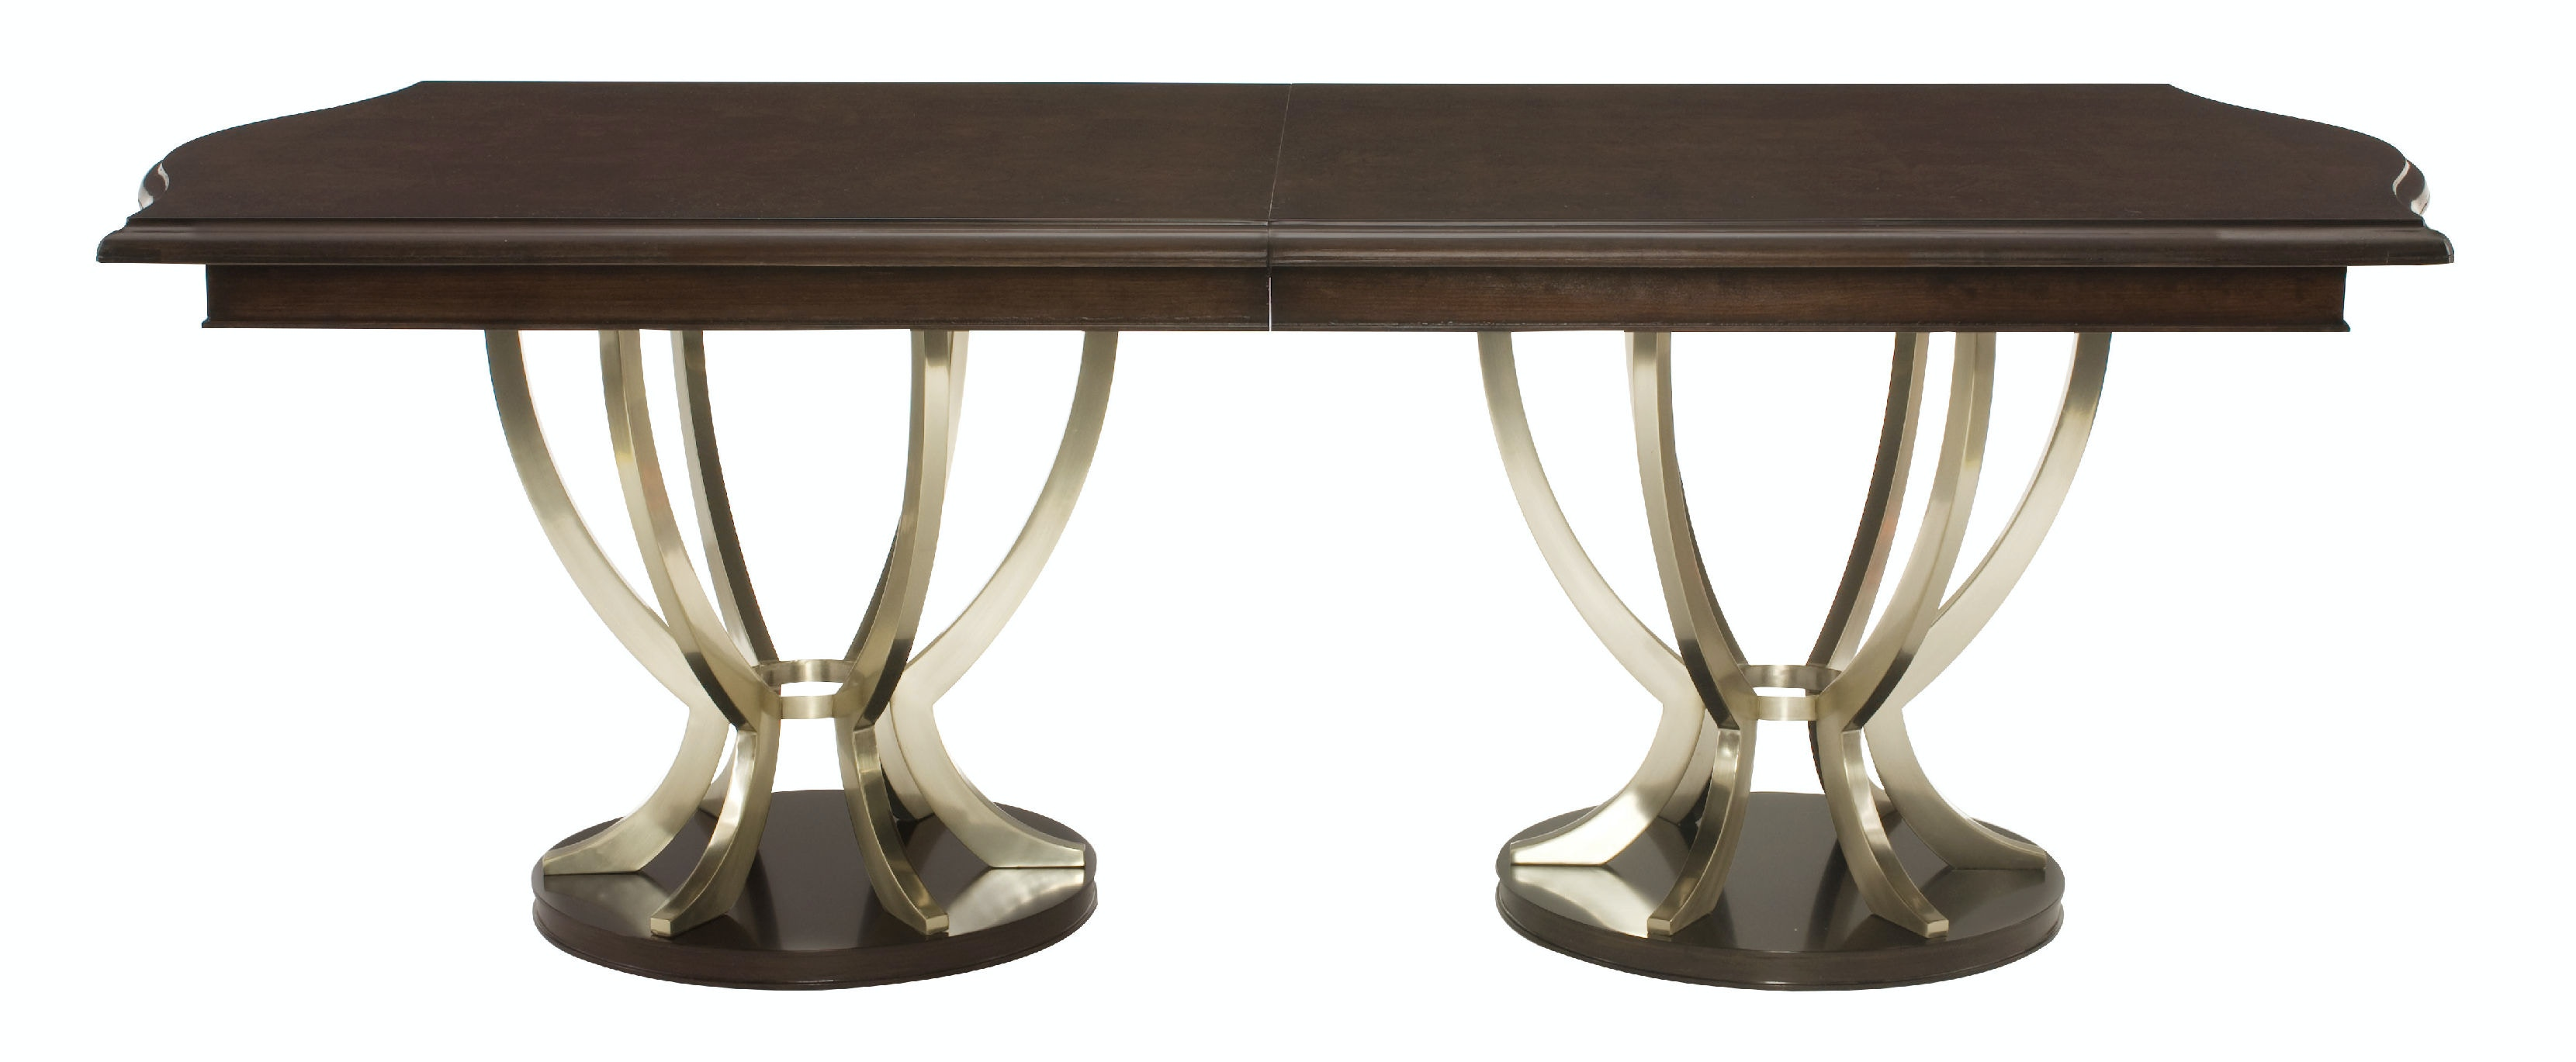 Miramont Double Pedestal Dining Table KT:35048